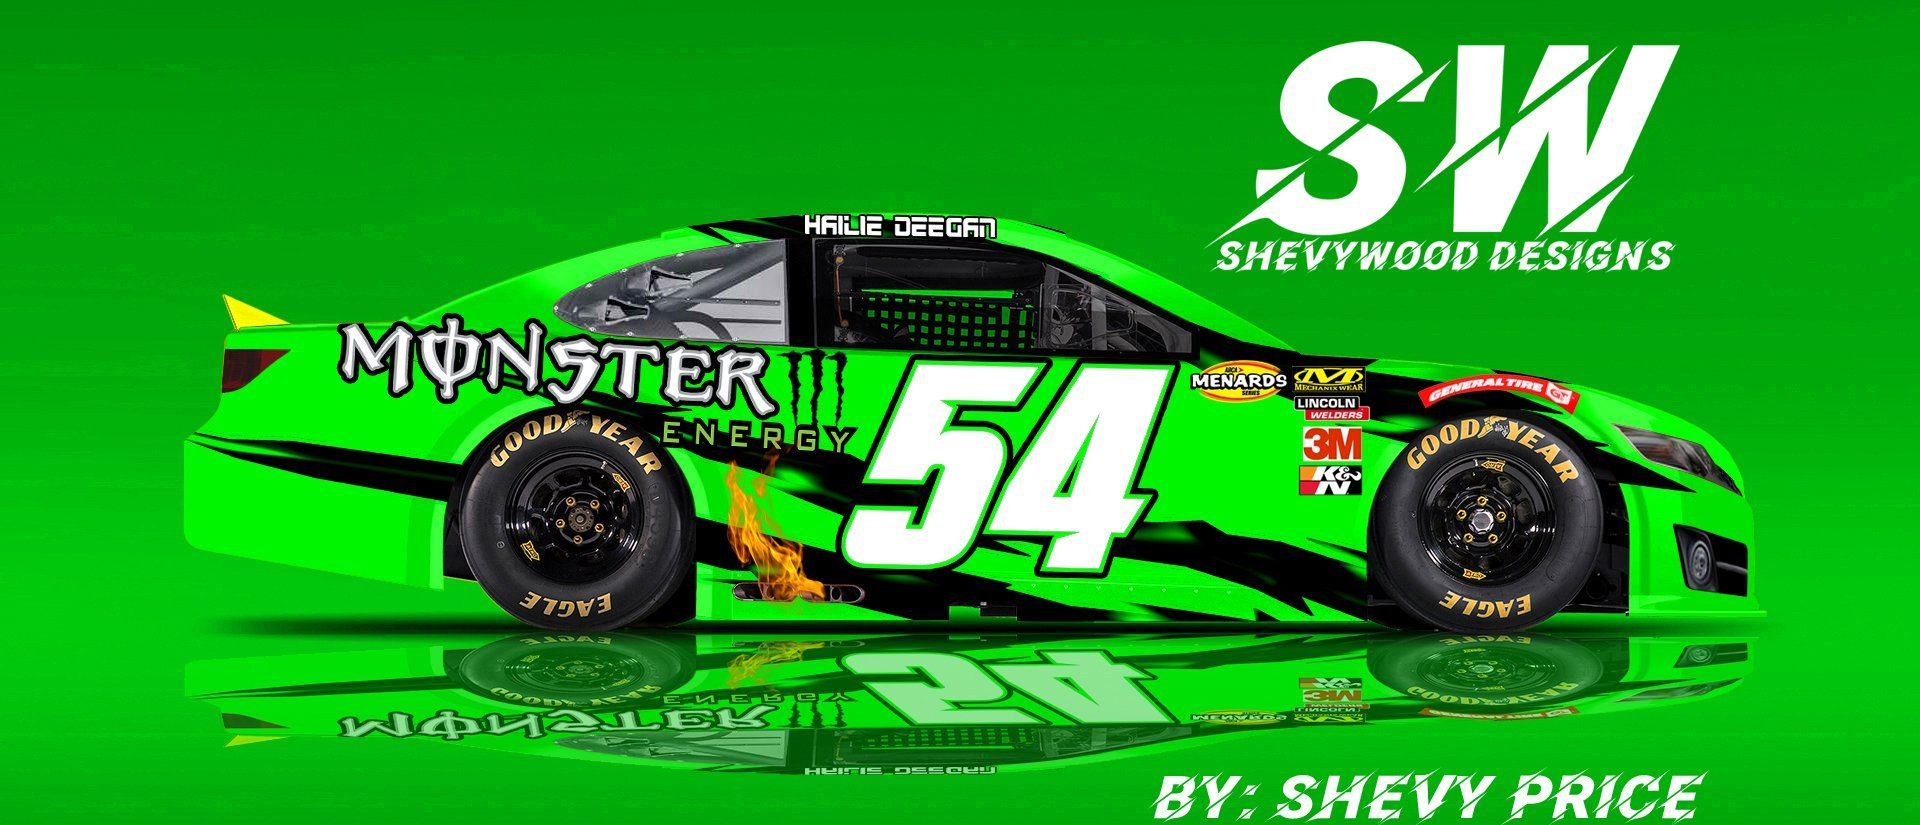 SHEVY PRICE DESIGNS on Twitter in 2020 Arca racing, Indy